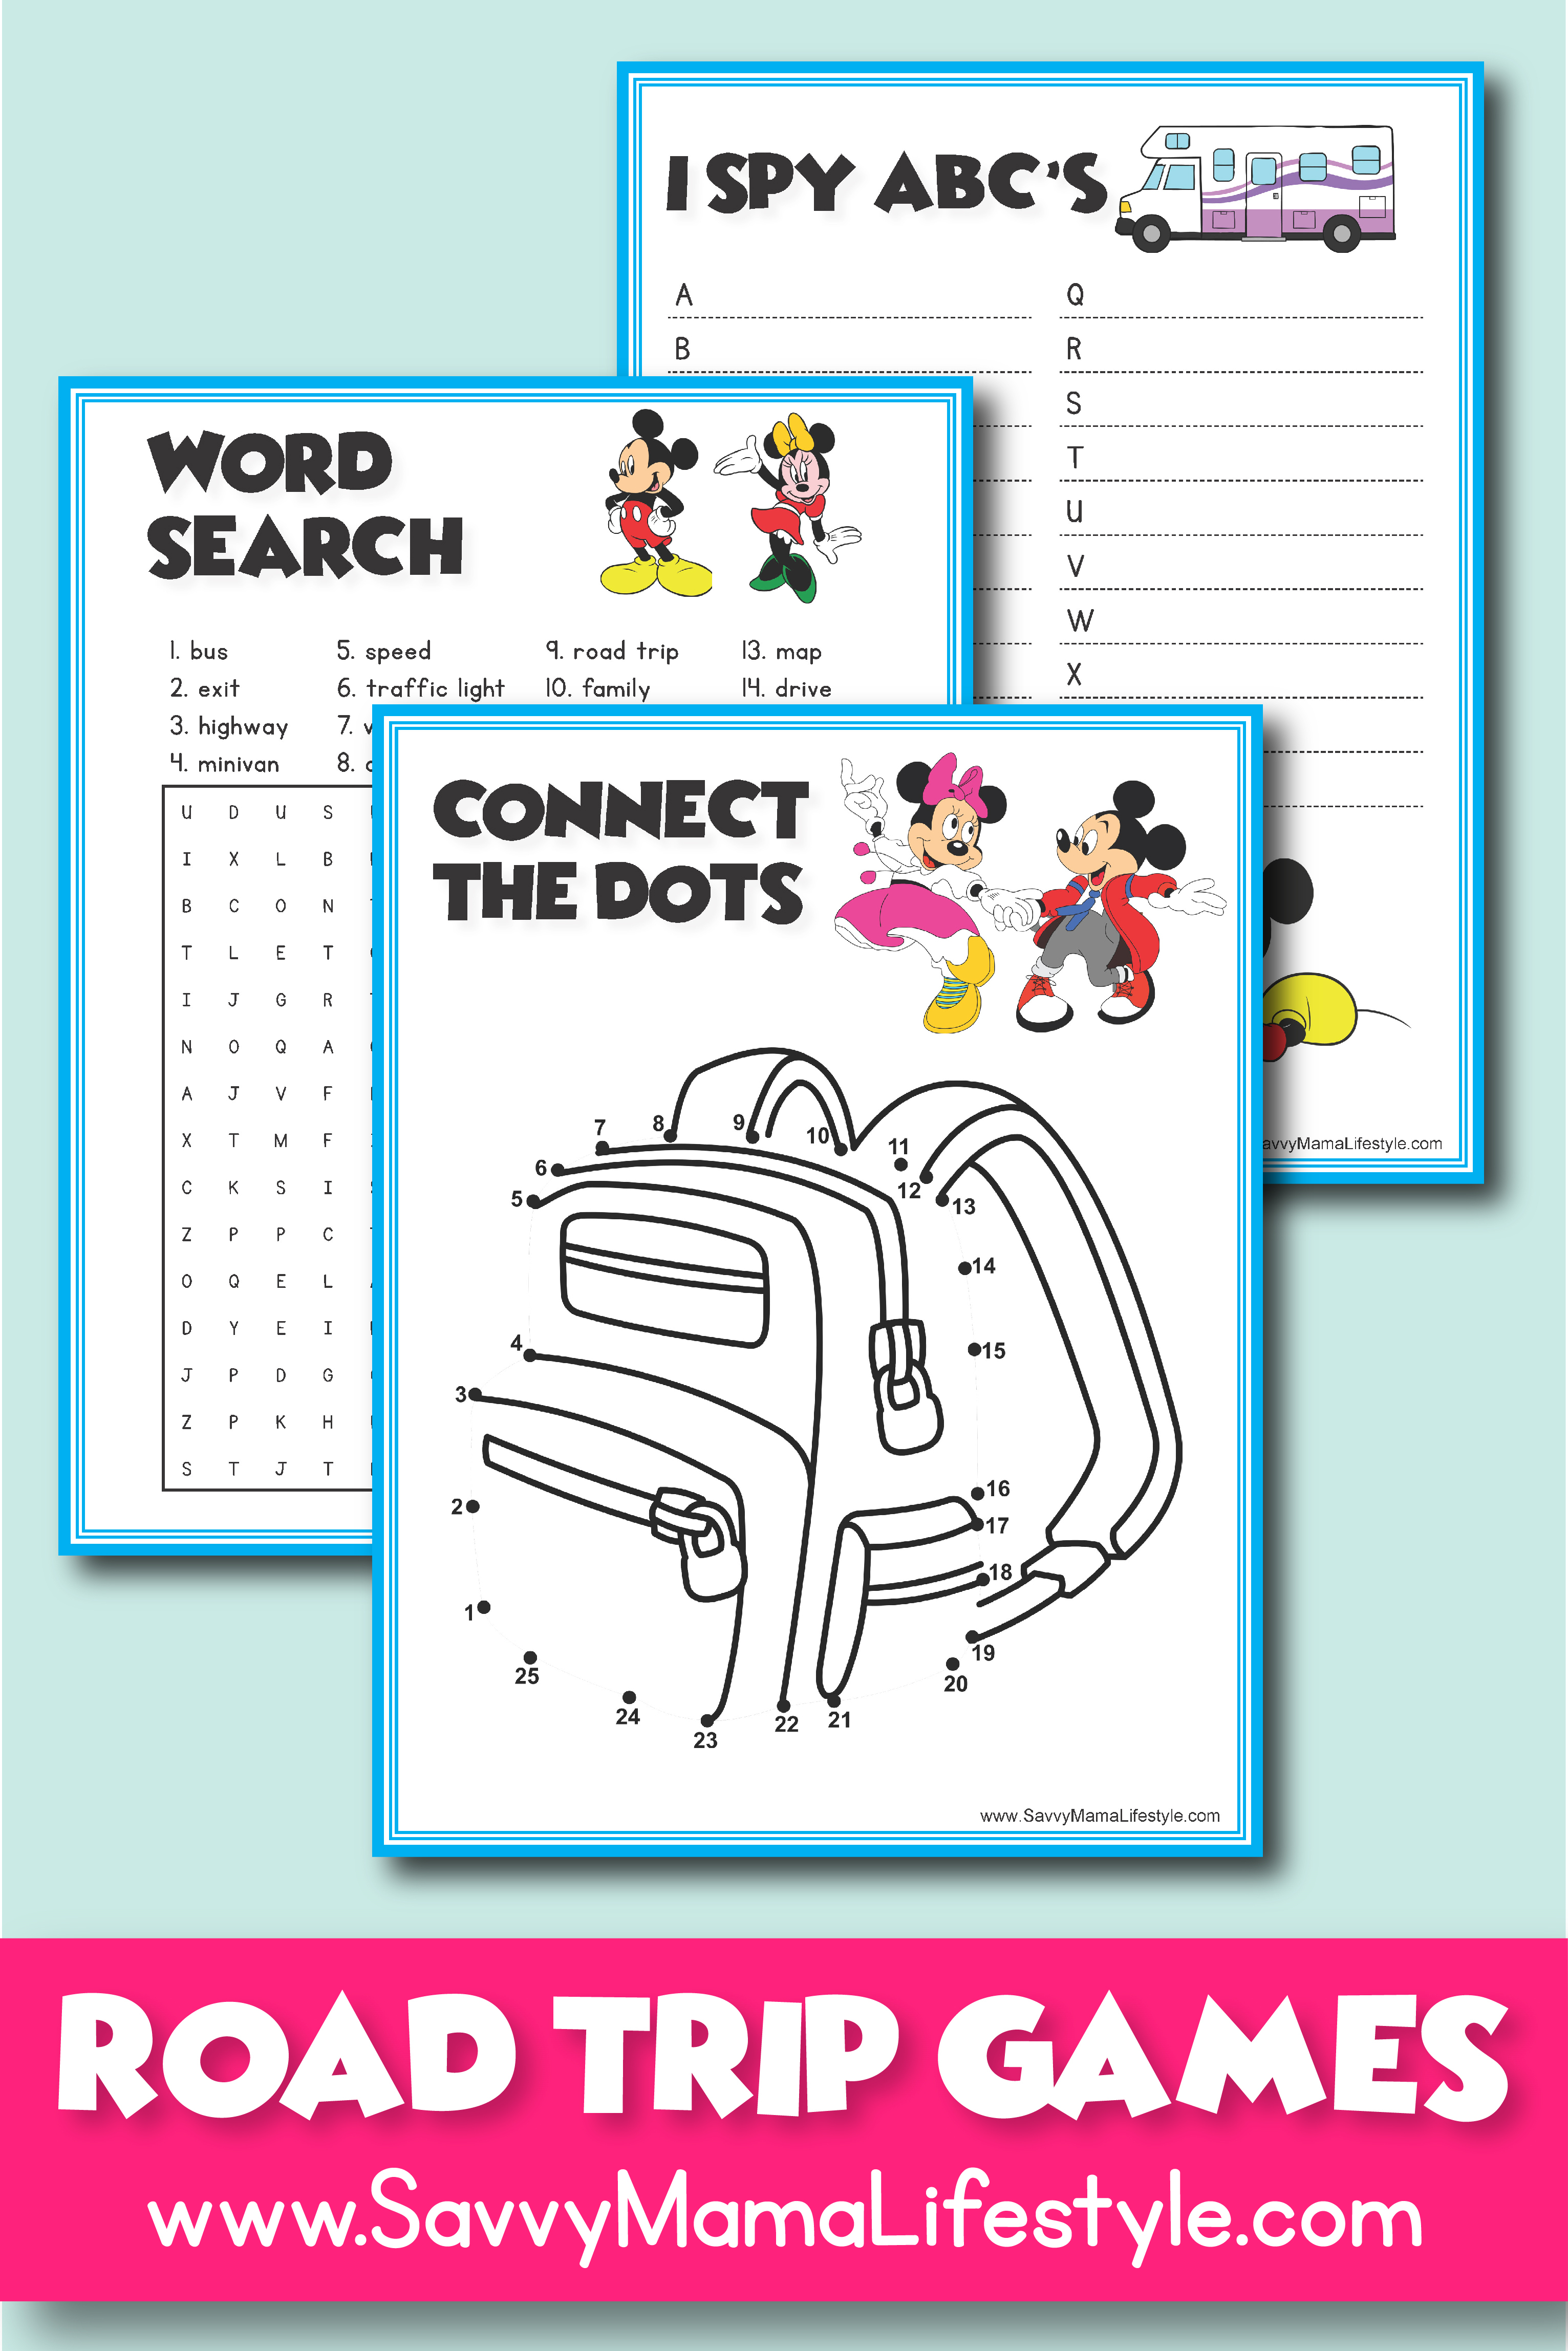 3 Disney Road Trip Games Free Printable Activities For The Car Ride